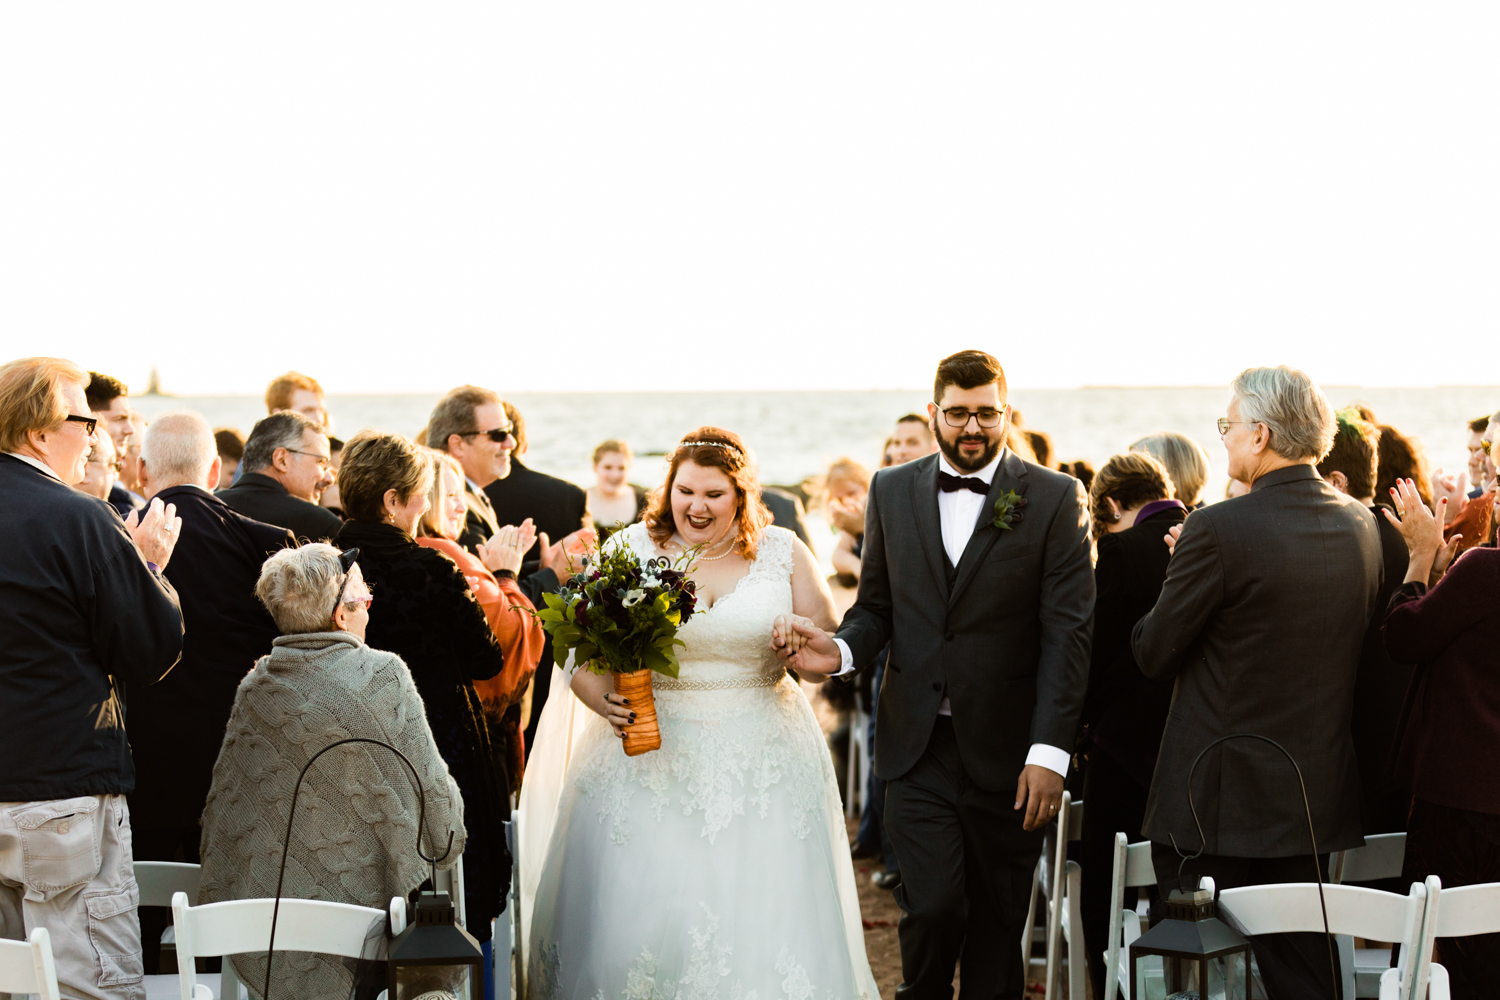 Bride and groom walking down aisle on beach wedding ceremony